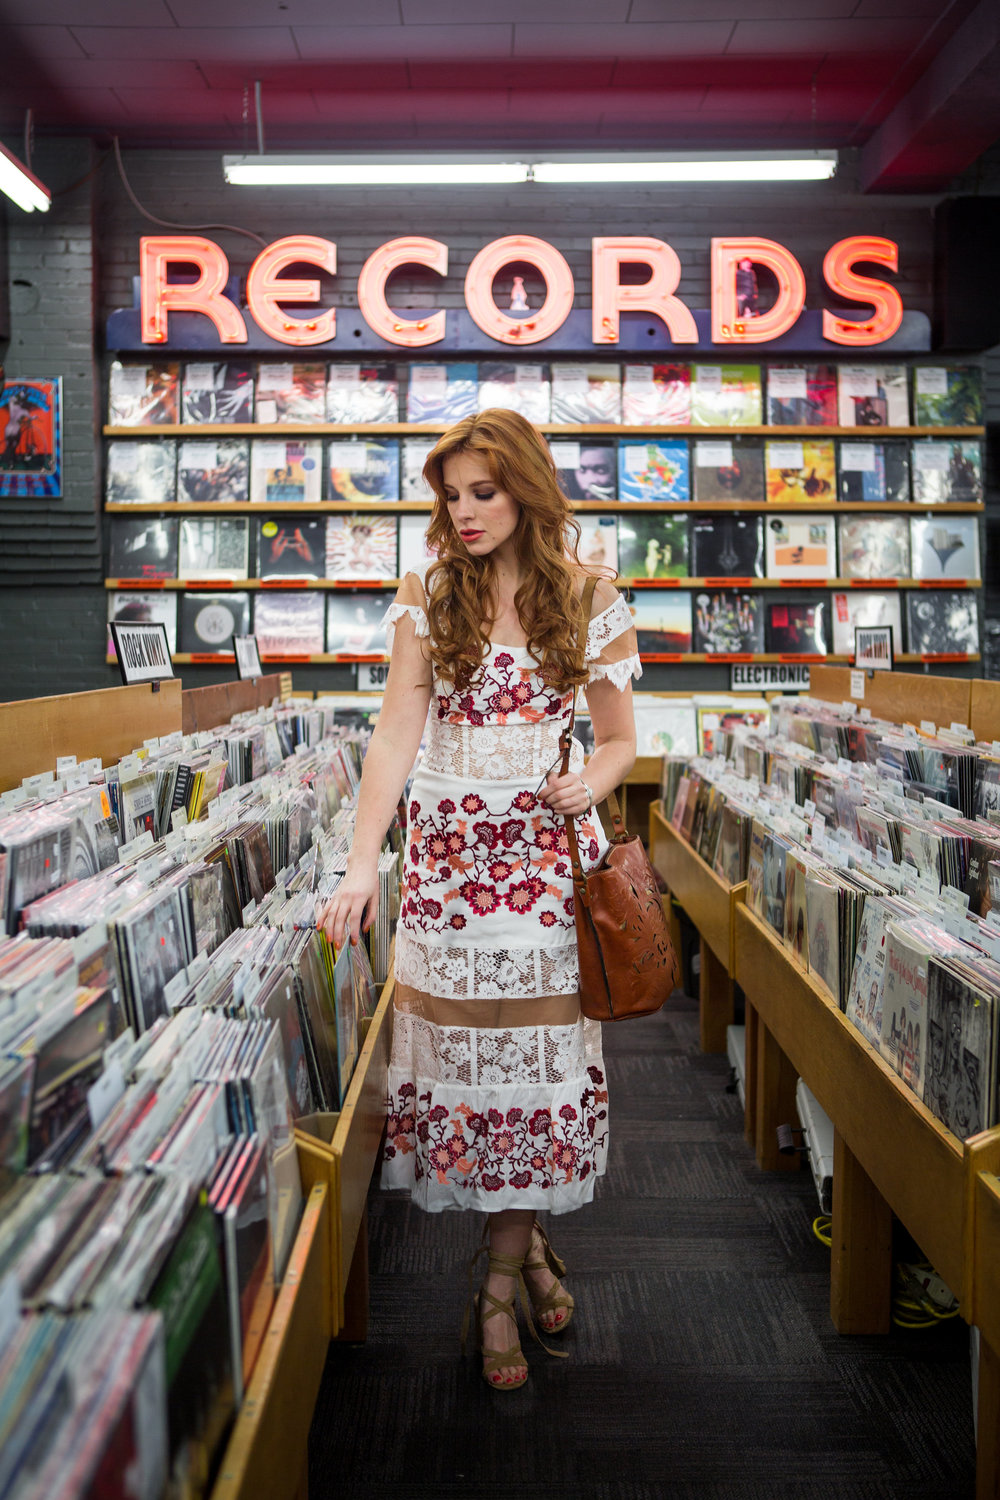 Redhead shopping for records